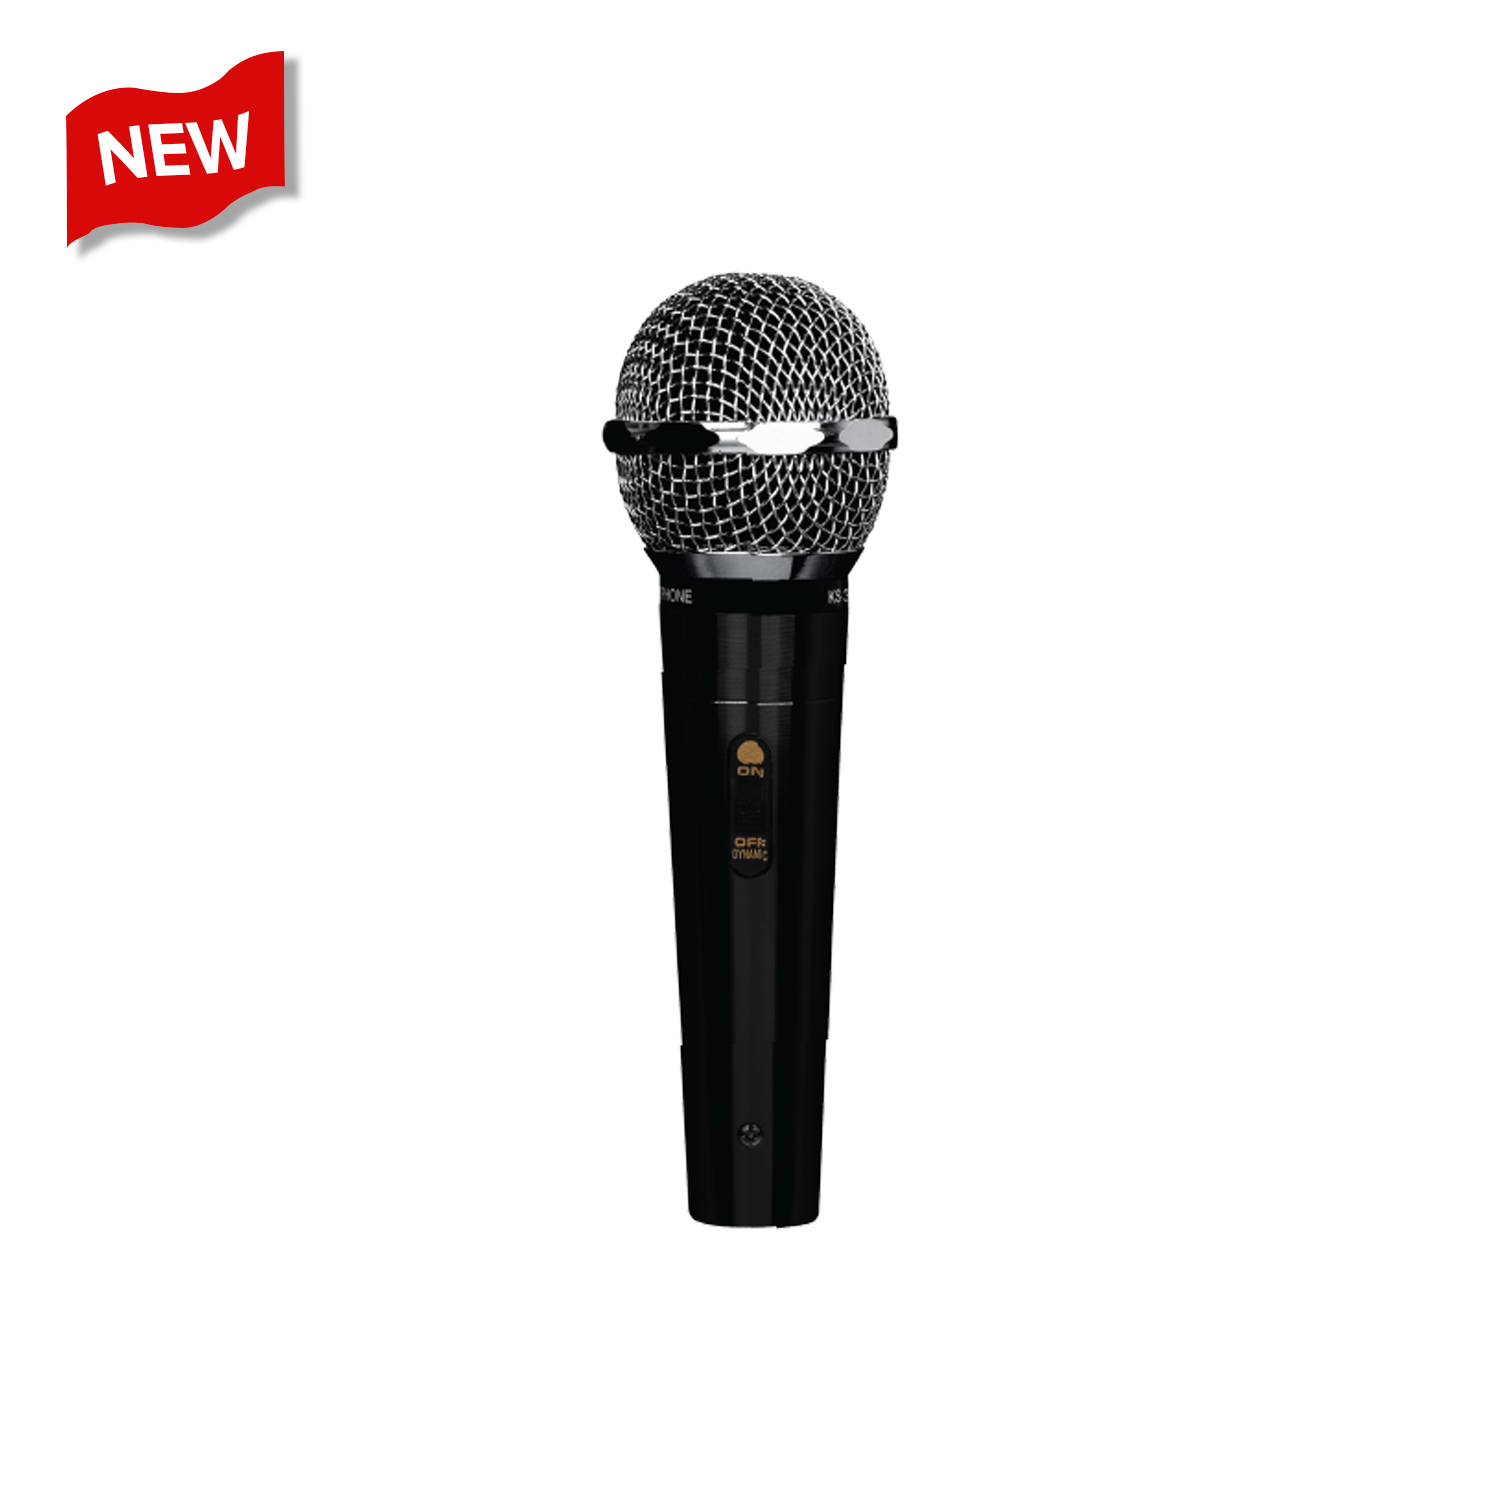 KS-3000 Wired Microphone